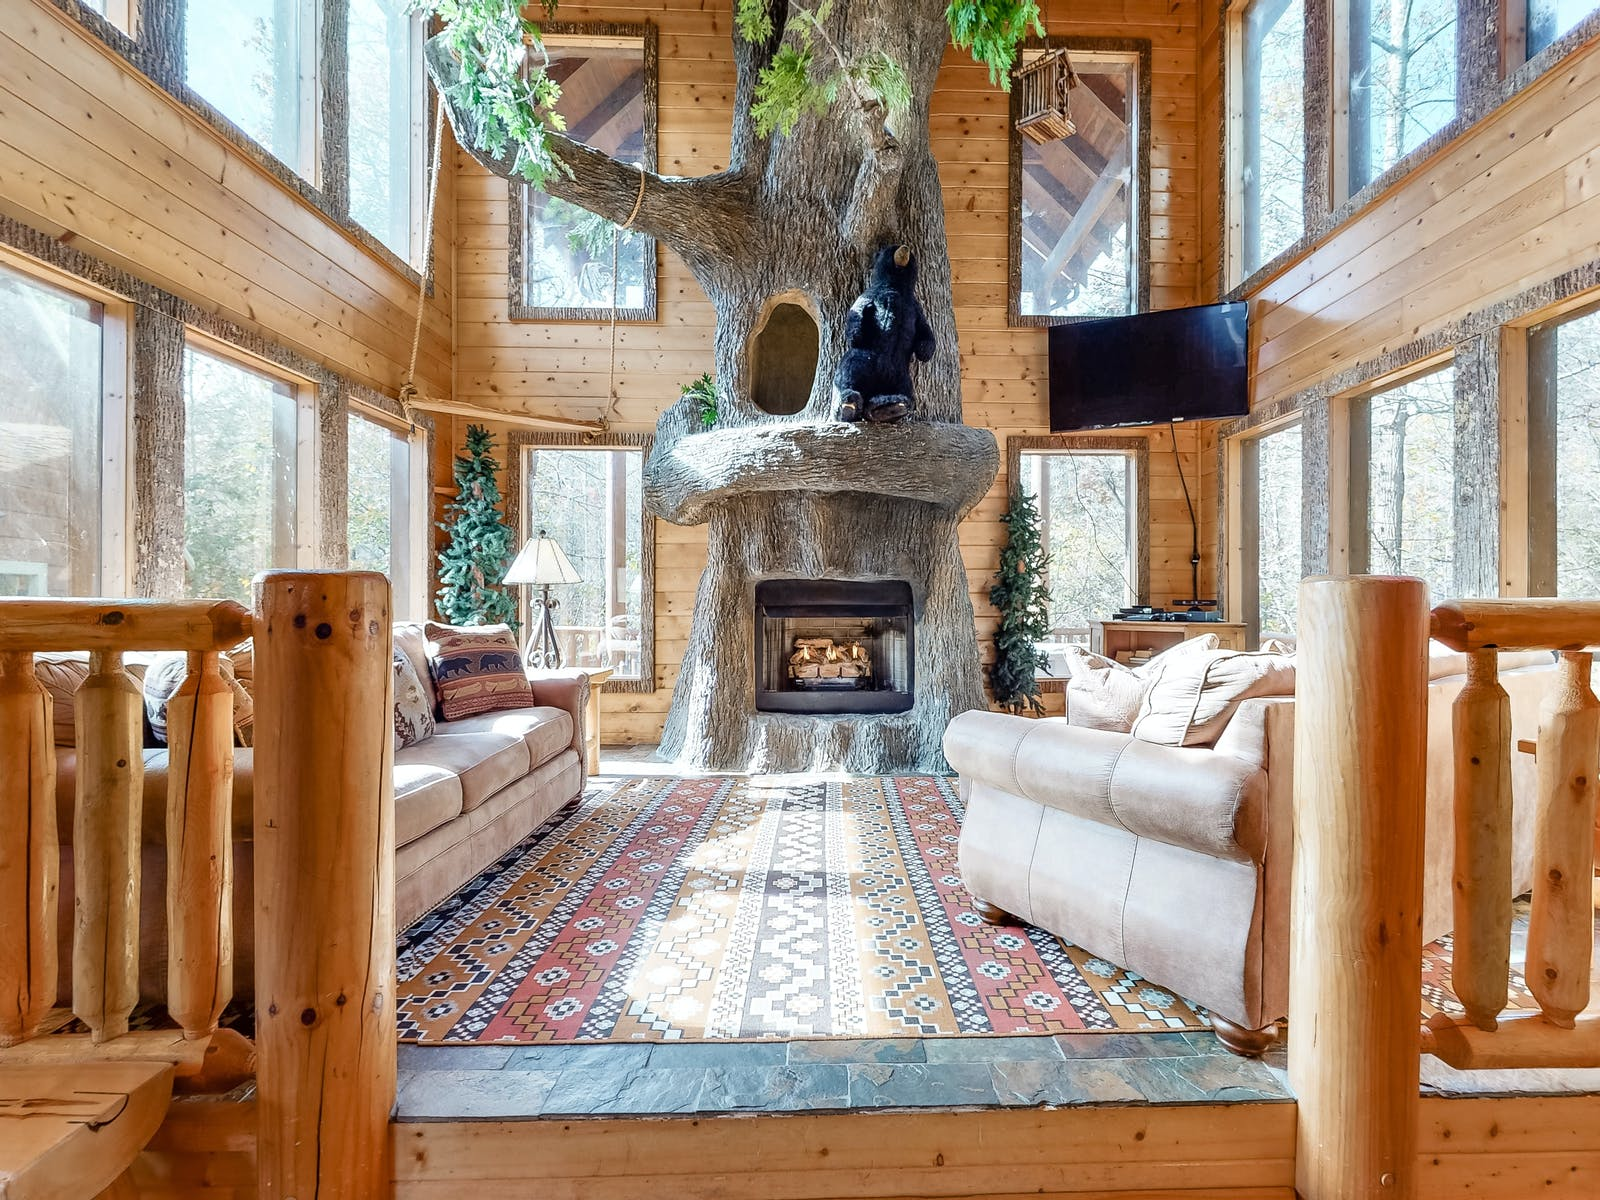 sevierville vacation rental with tree-shaped hearth with a swing